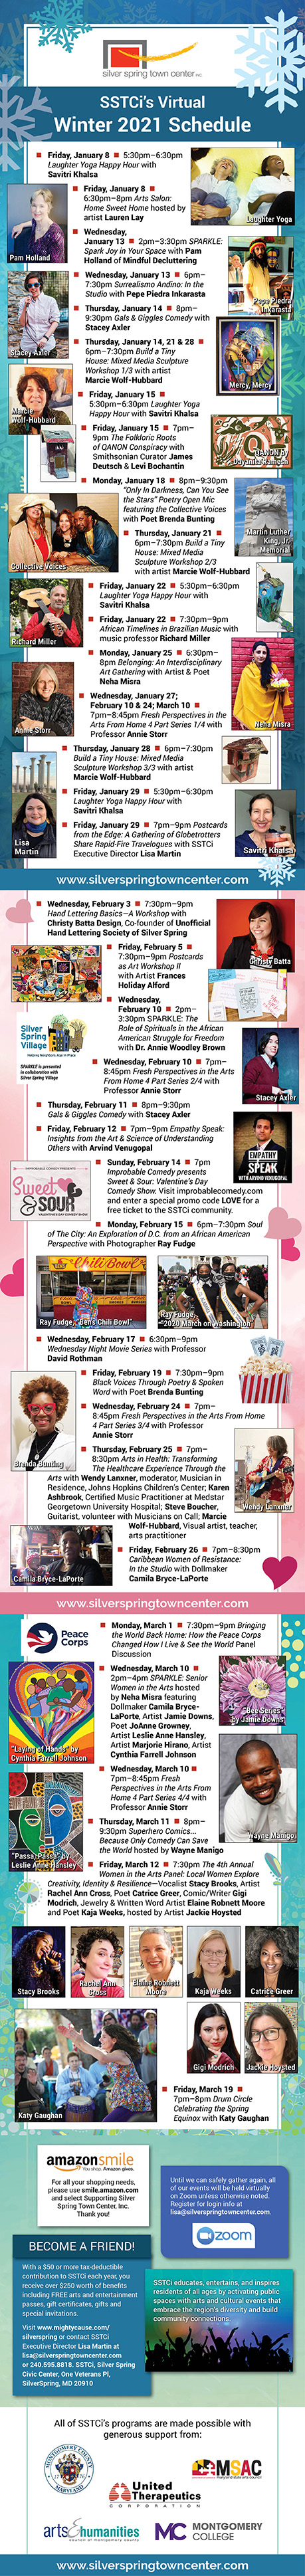 Silver Spring Town Center 2021 Winter Events